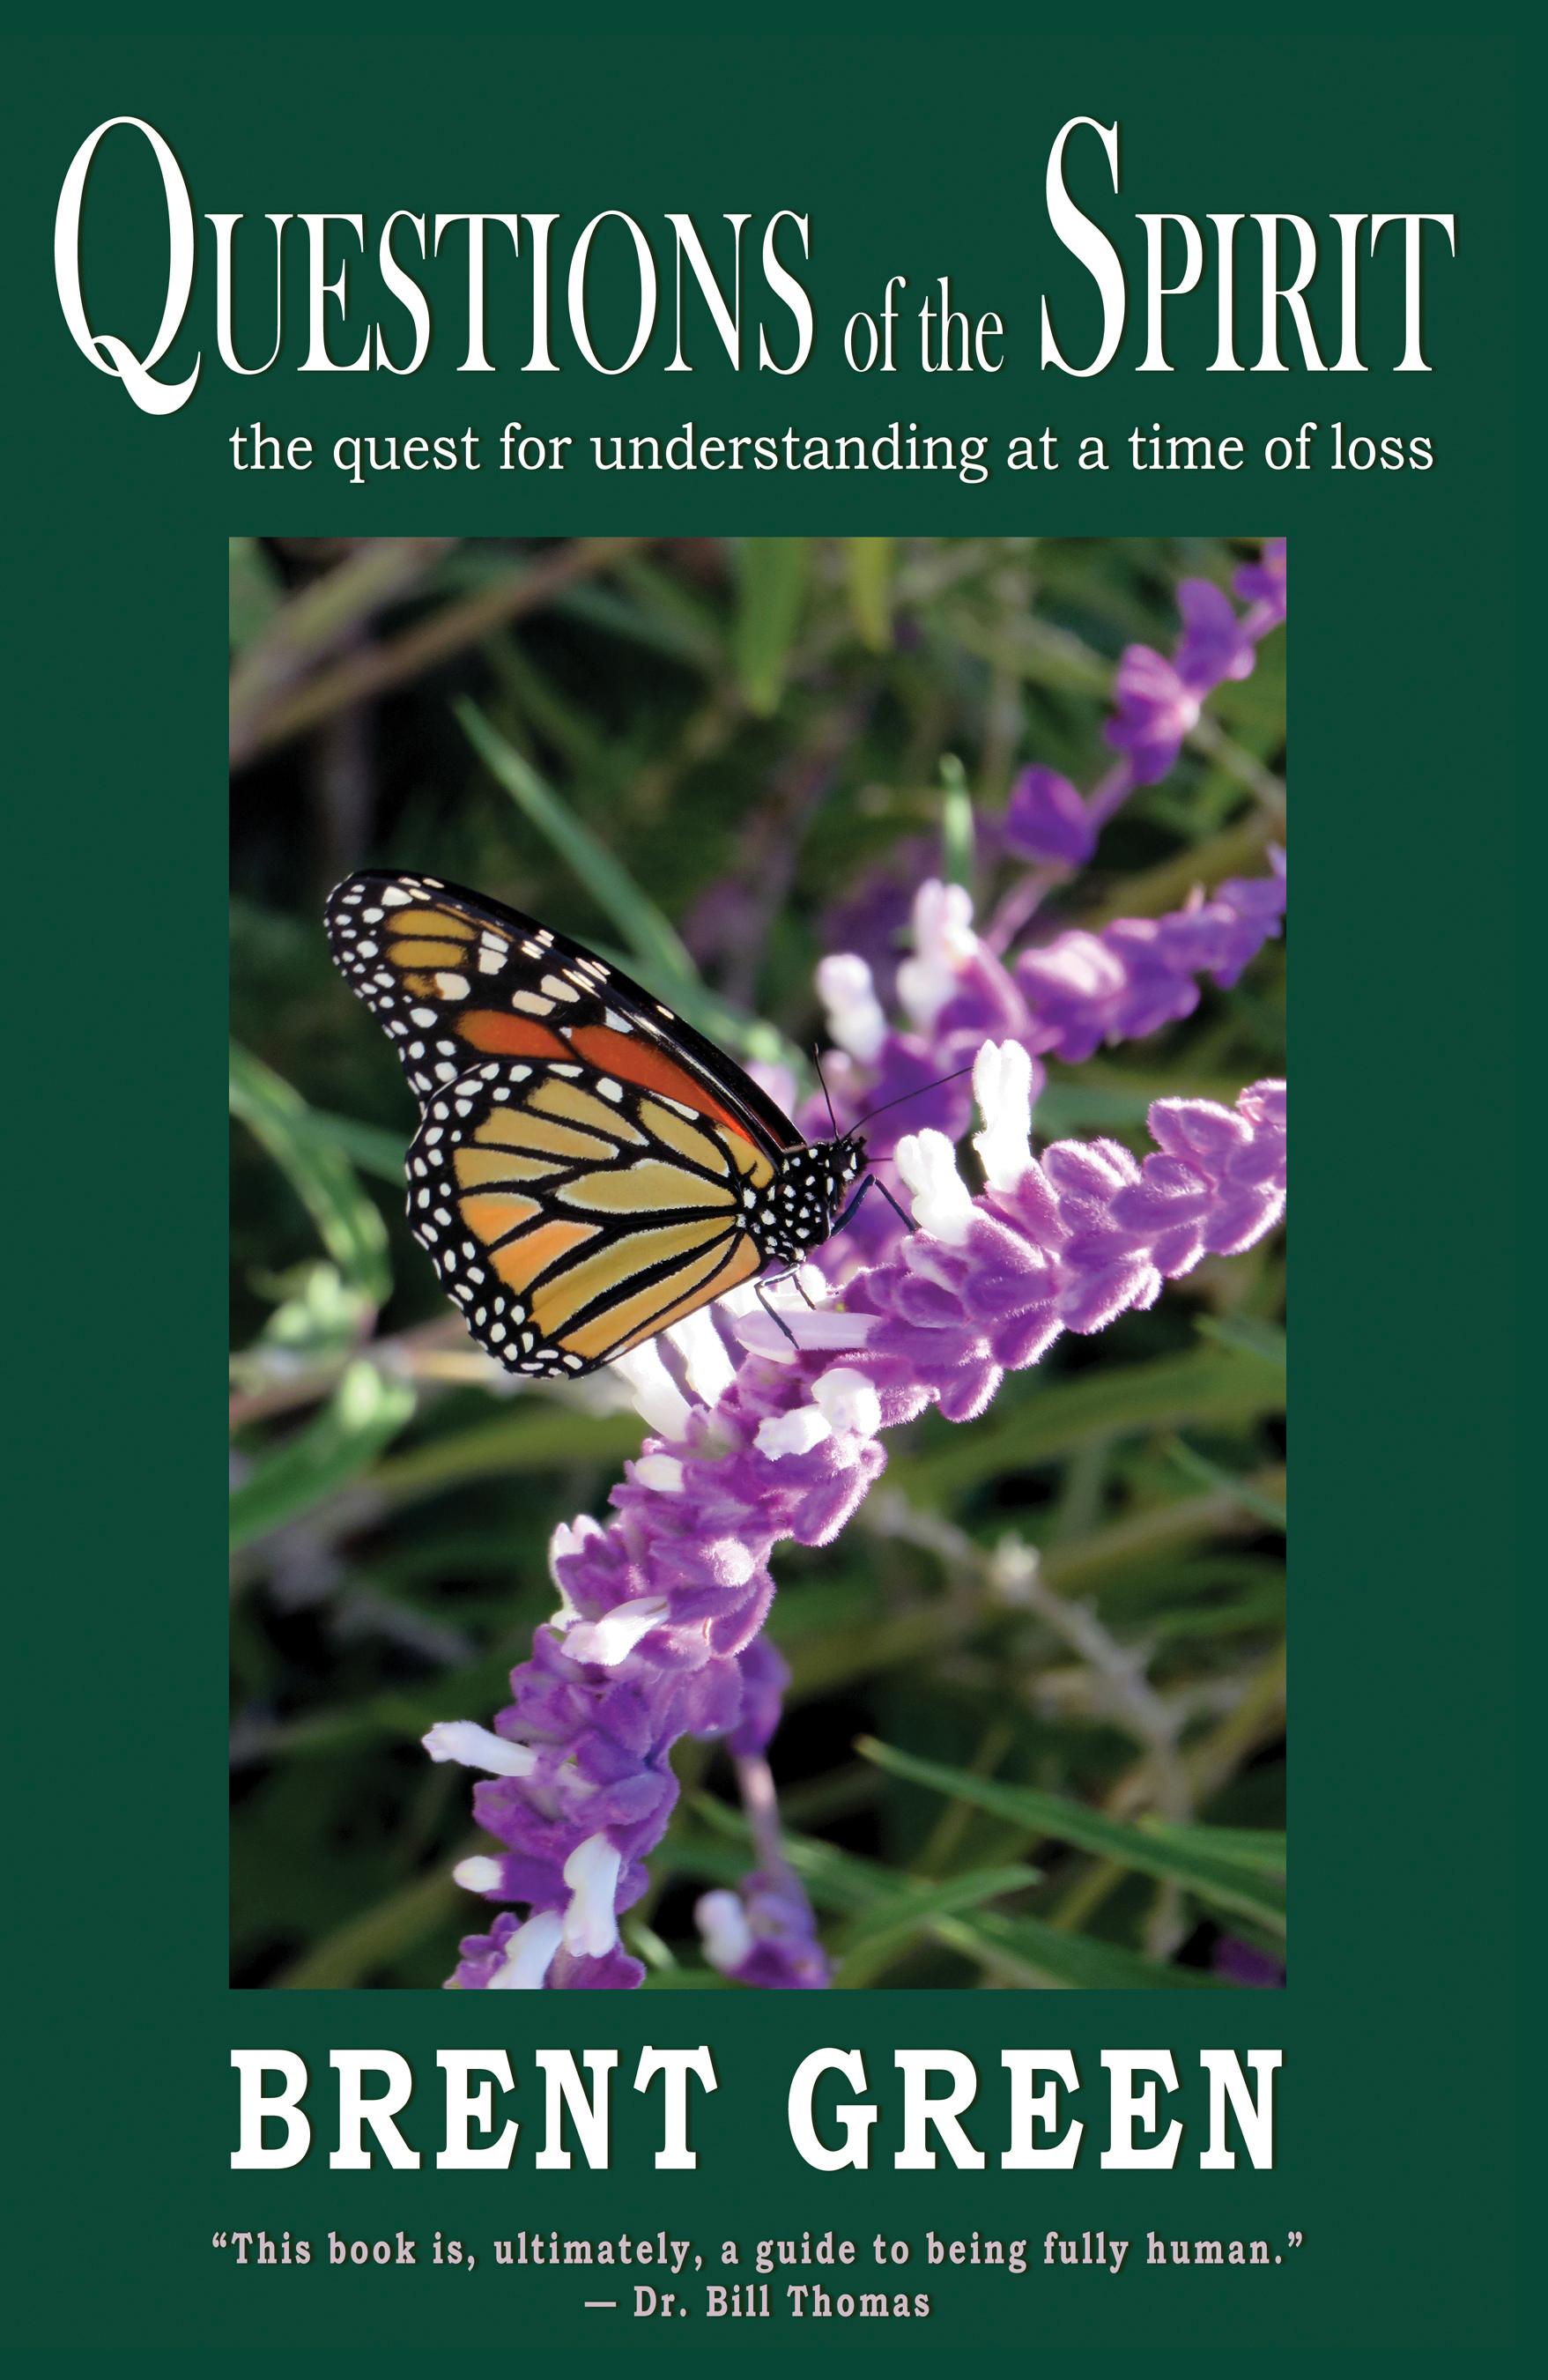 Questions of the Spirit; The Quest for Understanding at a Time of Loss, Brent Green, loss, grief, bereavement